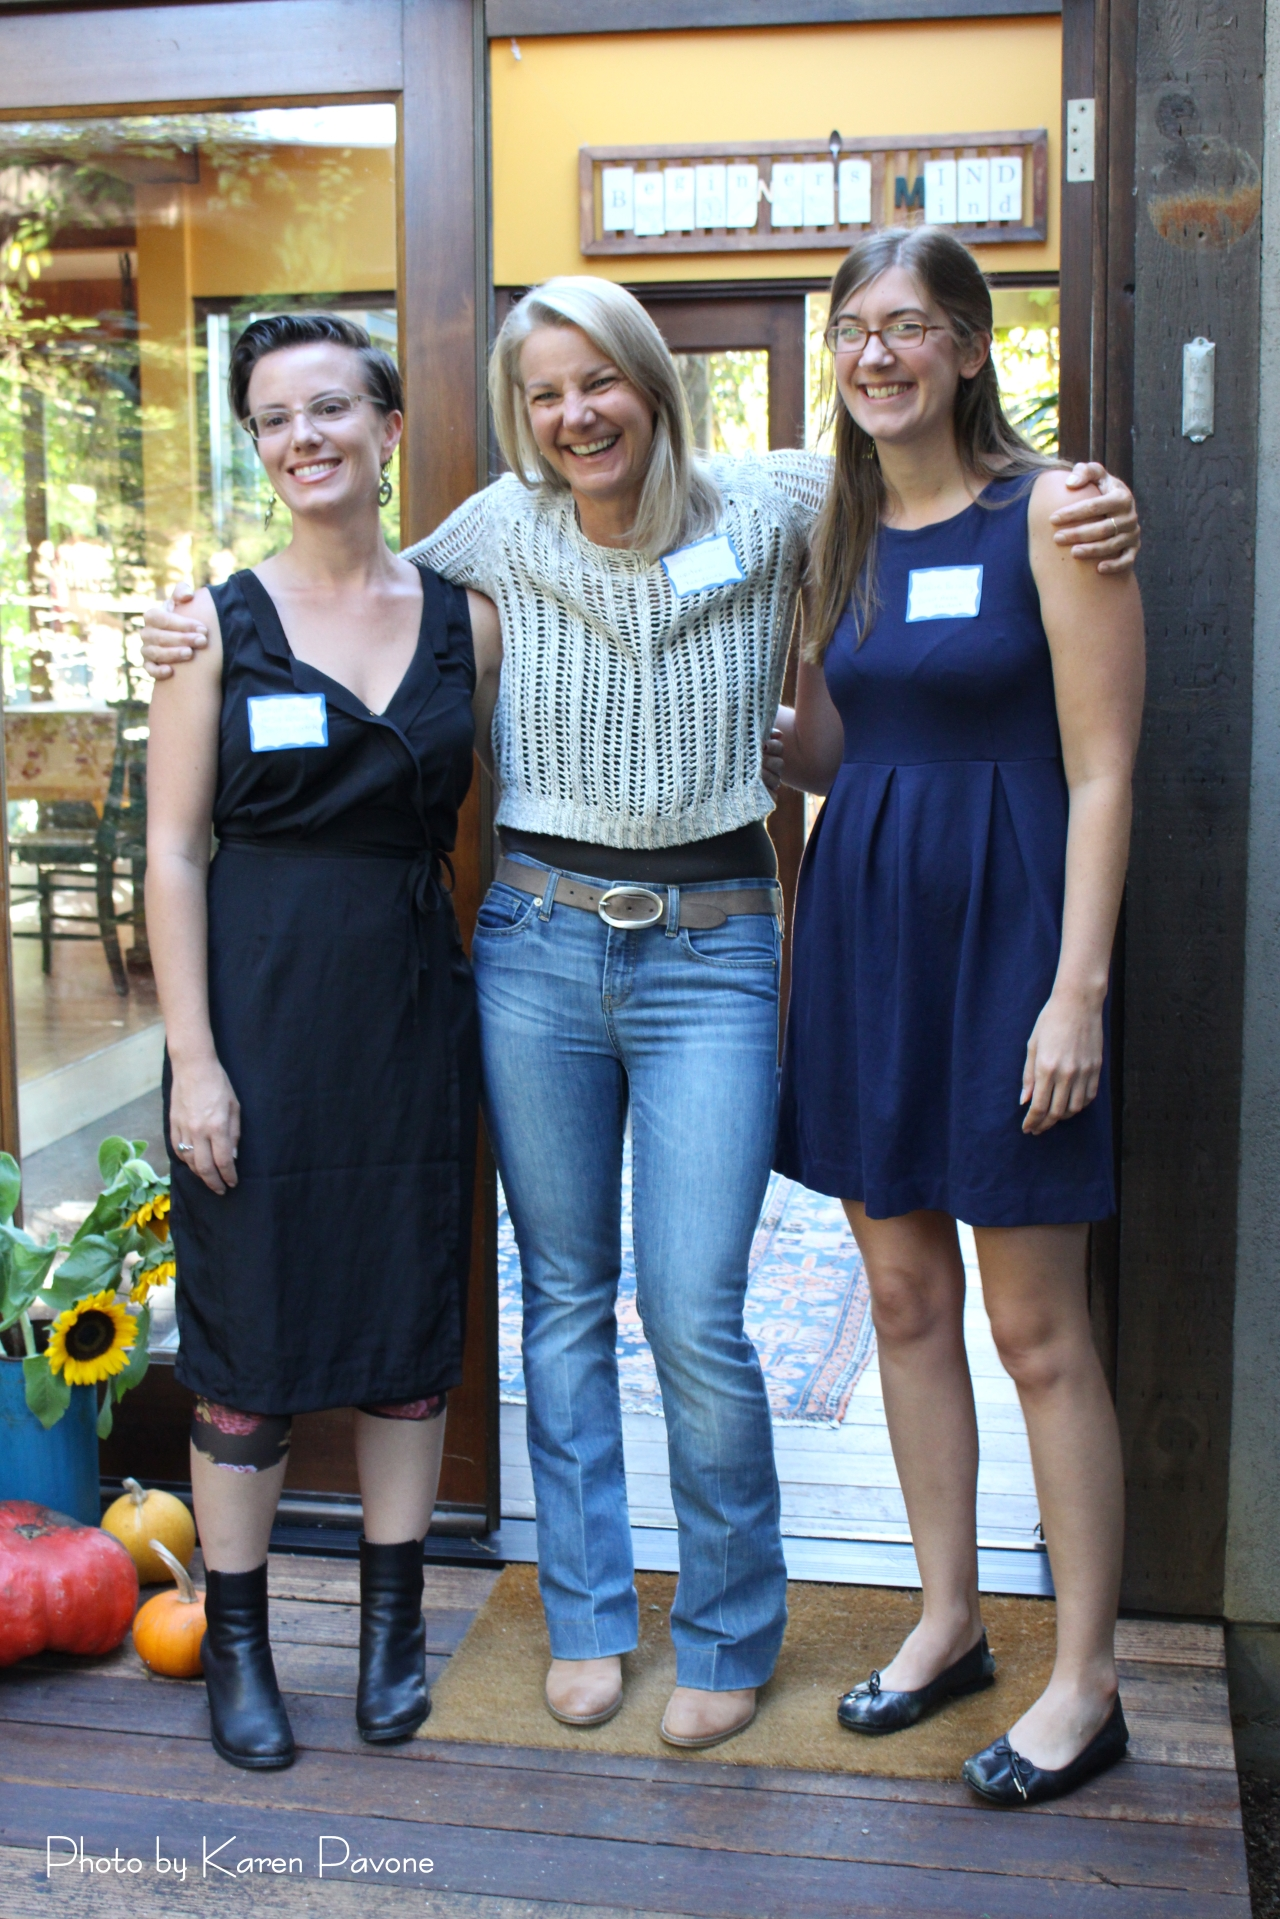 Writers in Residence (left to right) Sarah Shourd, Sally Bolger, and Blaire Briody